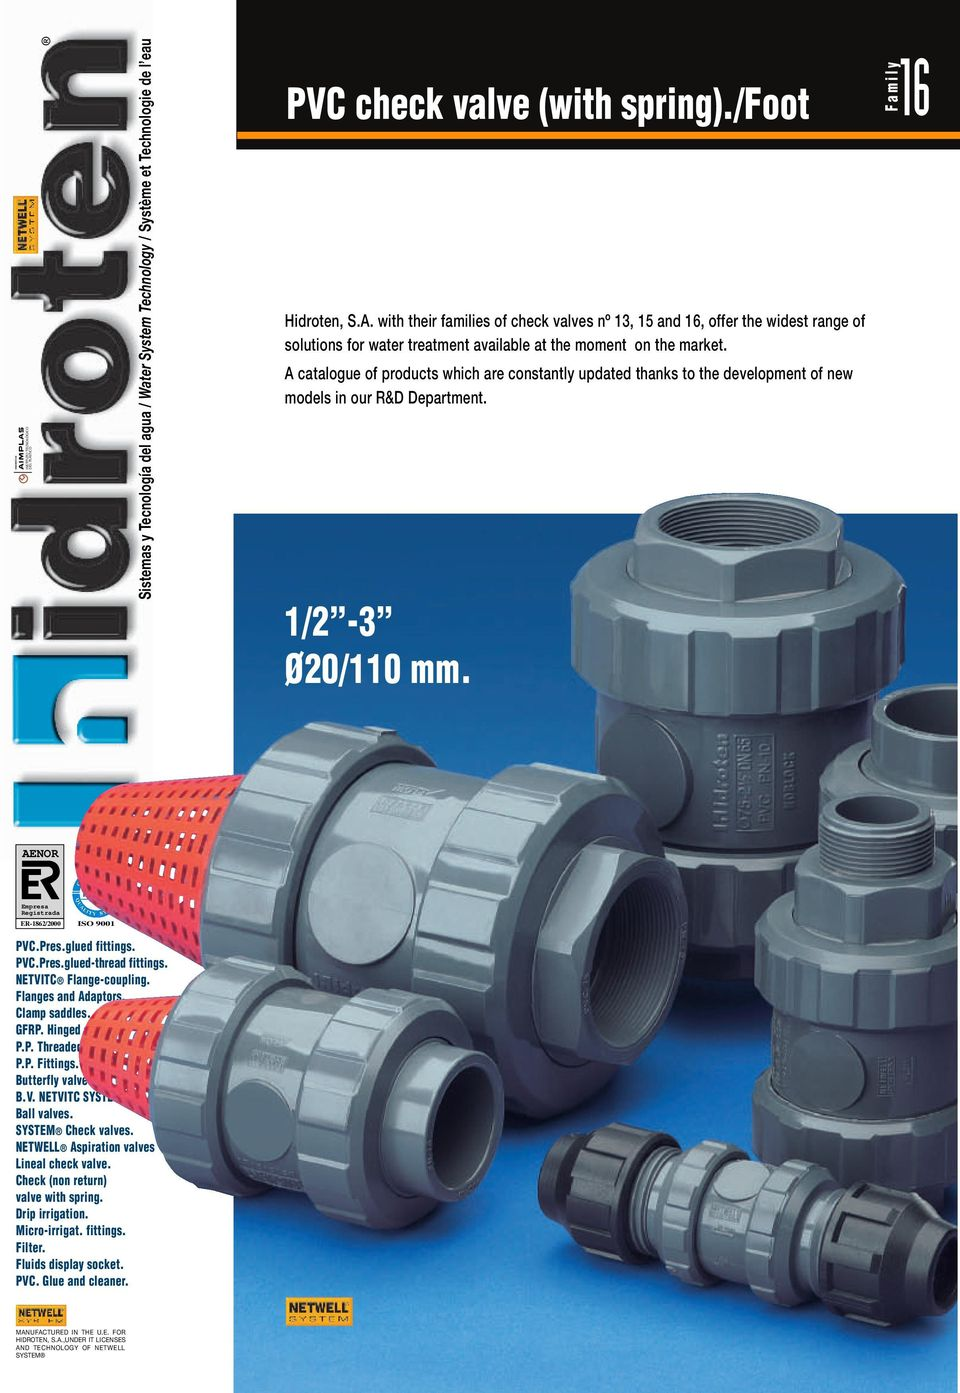 PVC check valve (with spring)./foot - PDF